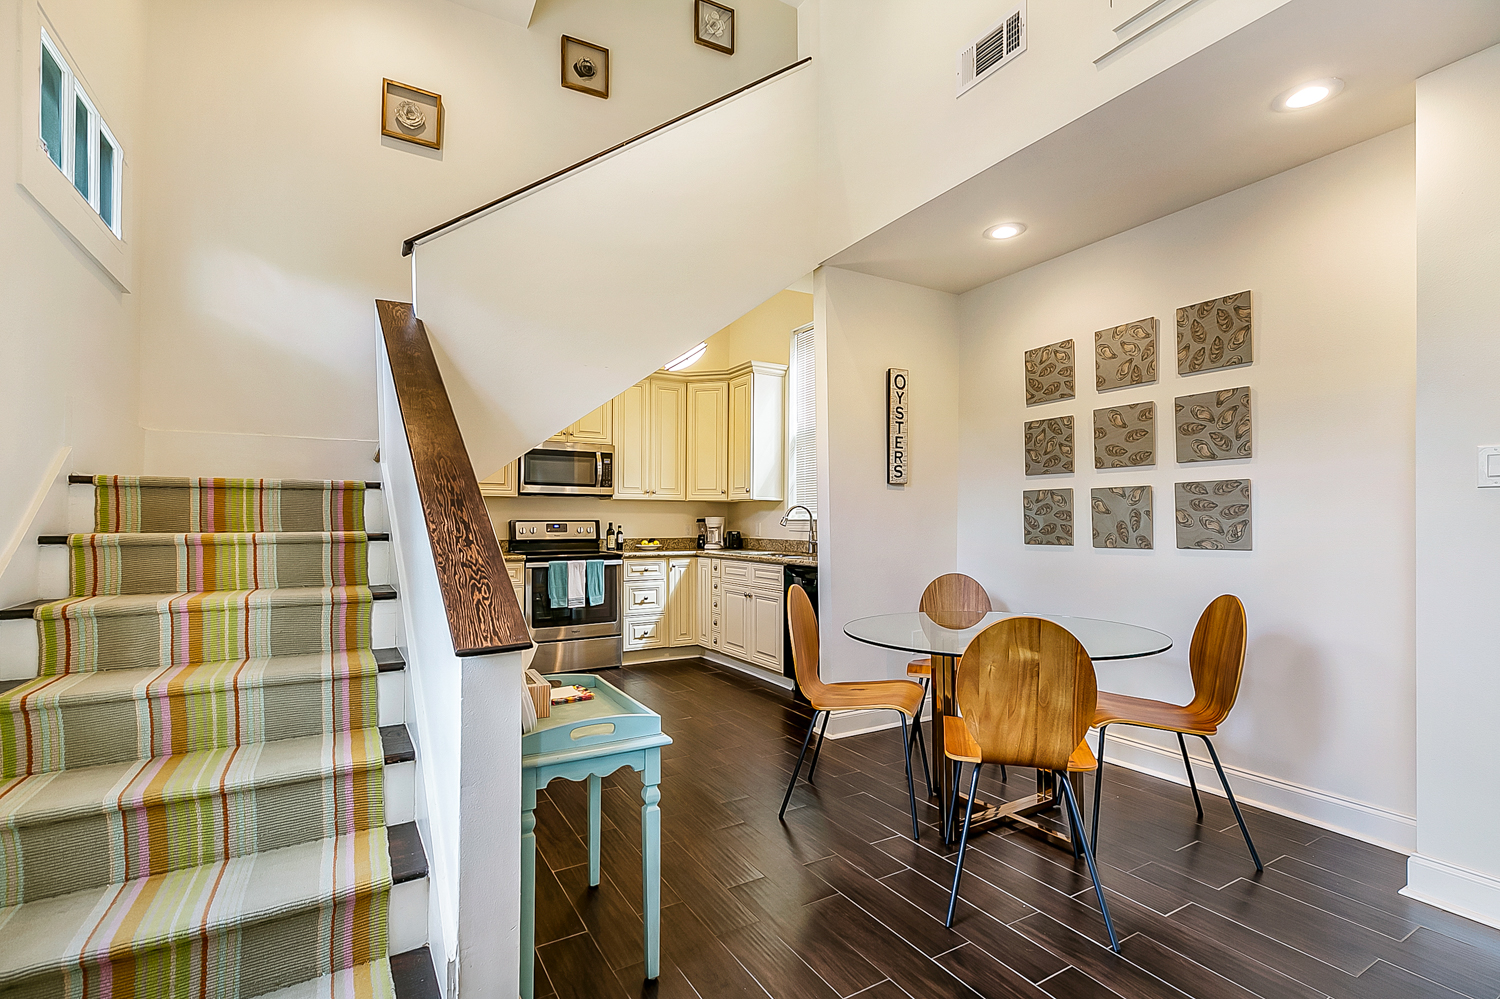 Garden District, Apartment, 1 beds, 1.0 baths, $2800 per month New Orleans Rental - devie image_1